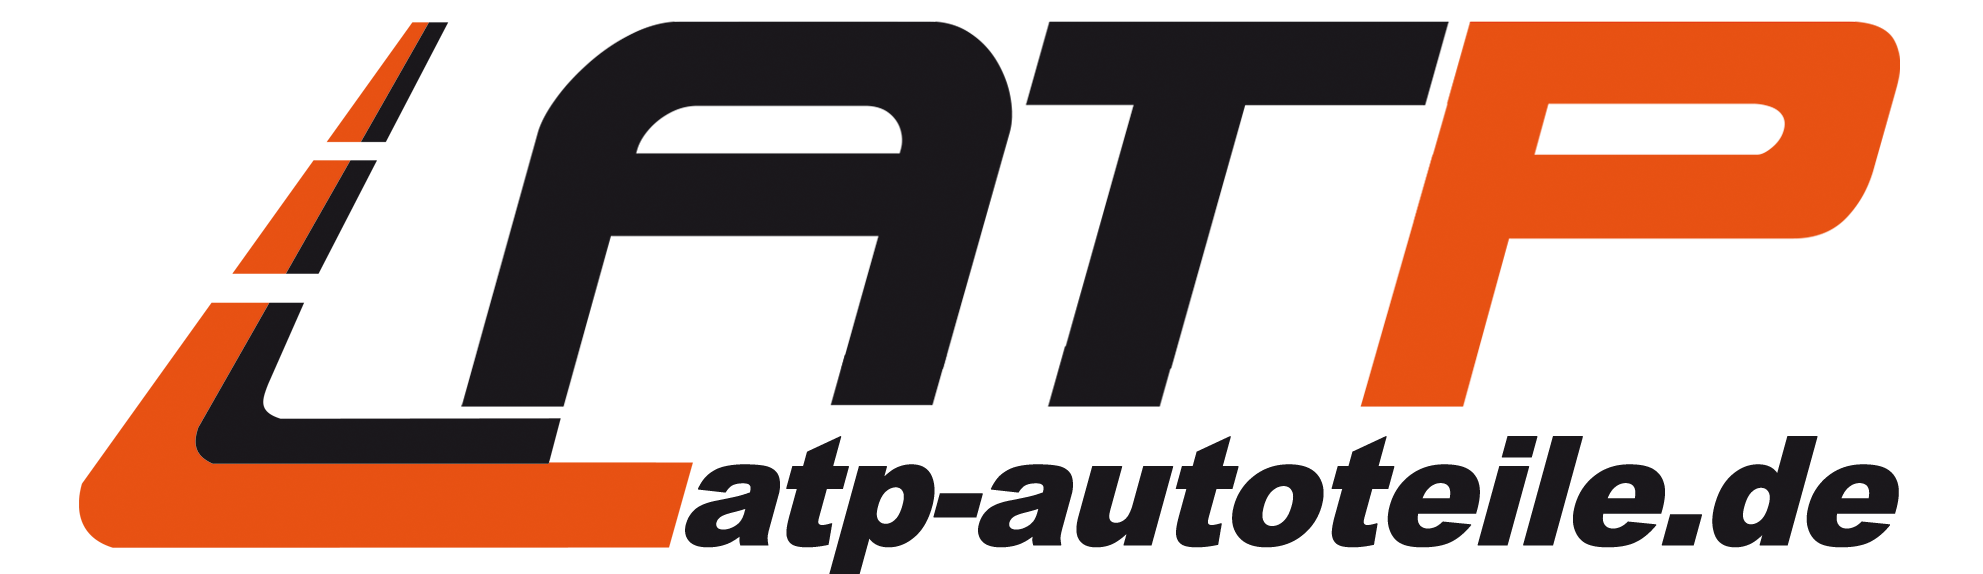 File:Logo ATP Autoteile.png - Wikimedia Commons